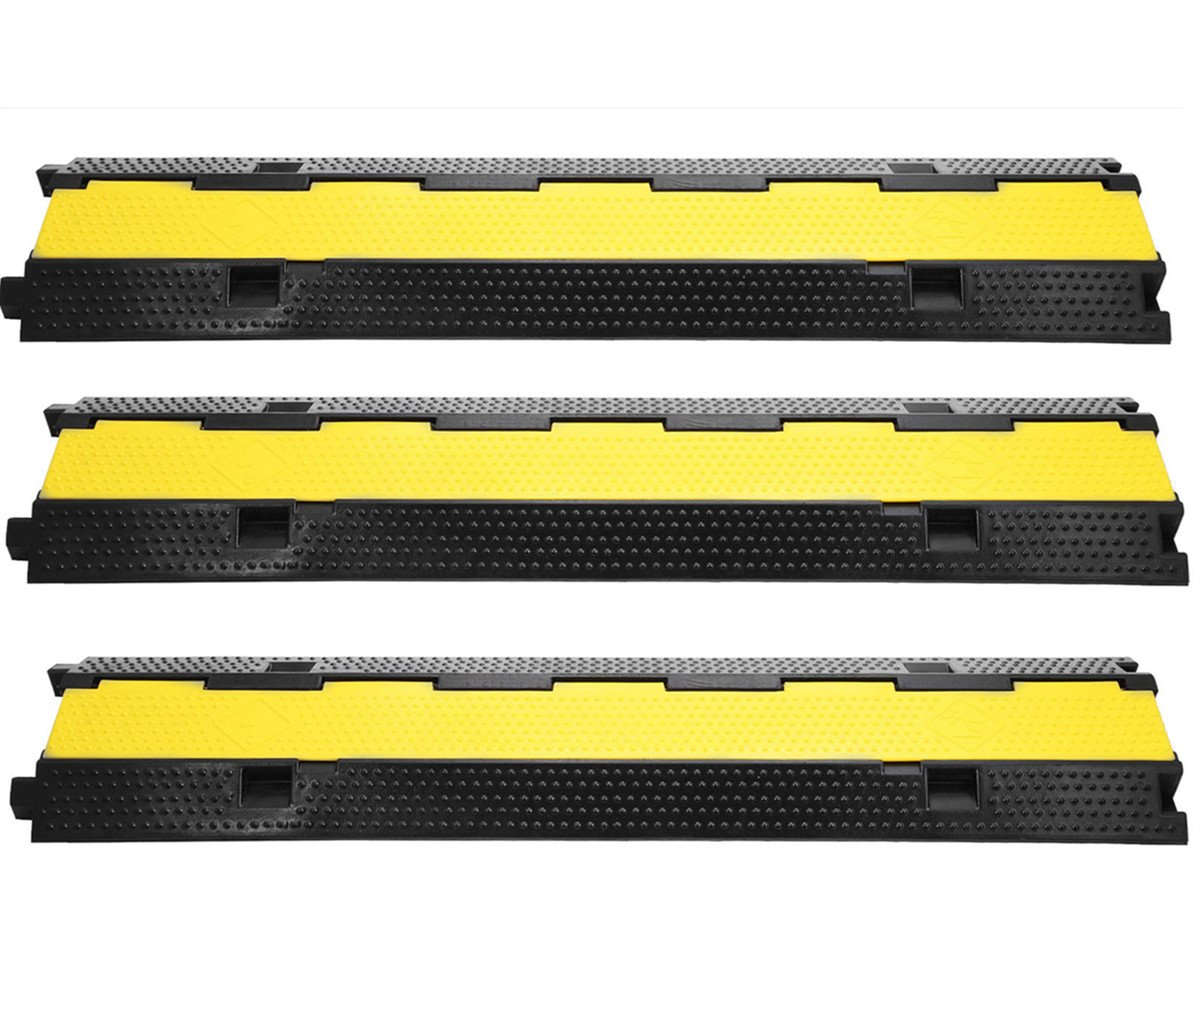 SmarketBuy 3 Pack Dual Channel Rubber Cable Protector 11000 LBS Capacity Cable Ramps Black Ramp and Yellow lid Connector Speed Bump